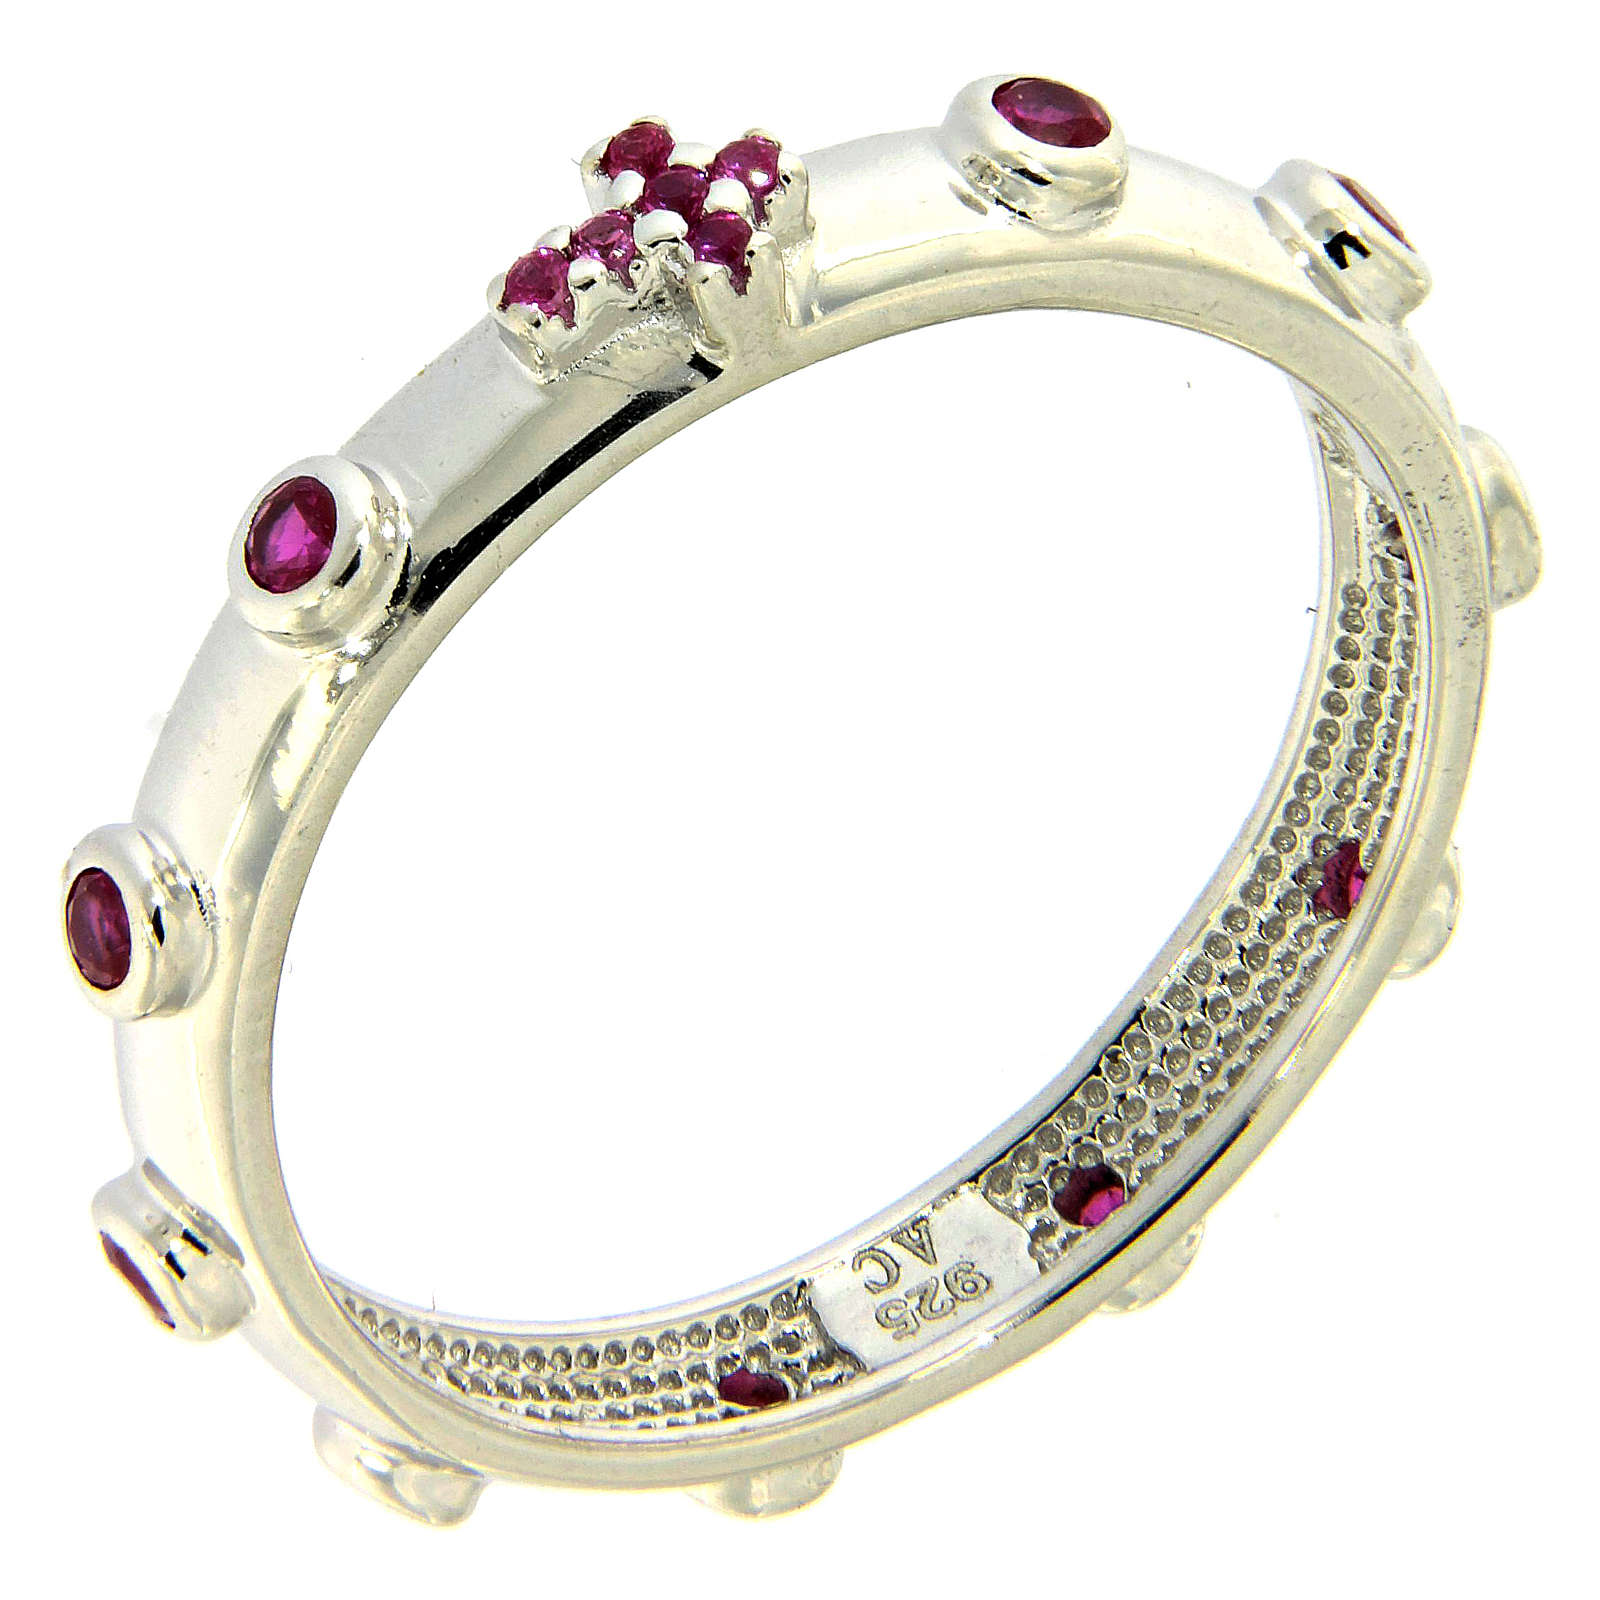 Rosary Ring AMEN rhodium-plated silver 925, red zircons 3